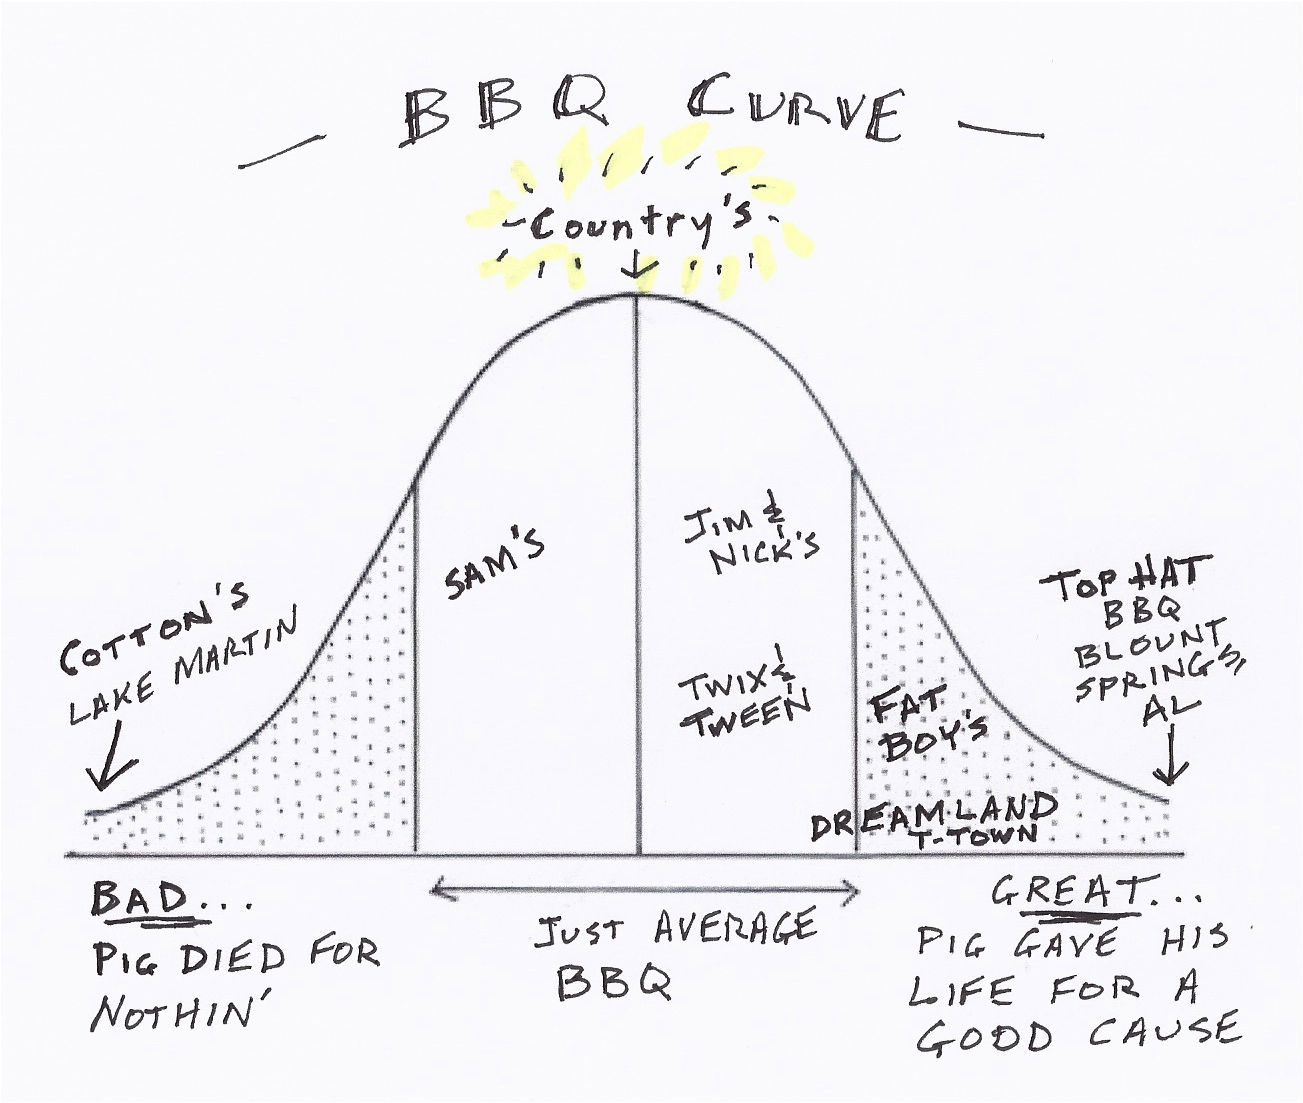 Barbecues quote #1